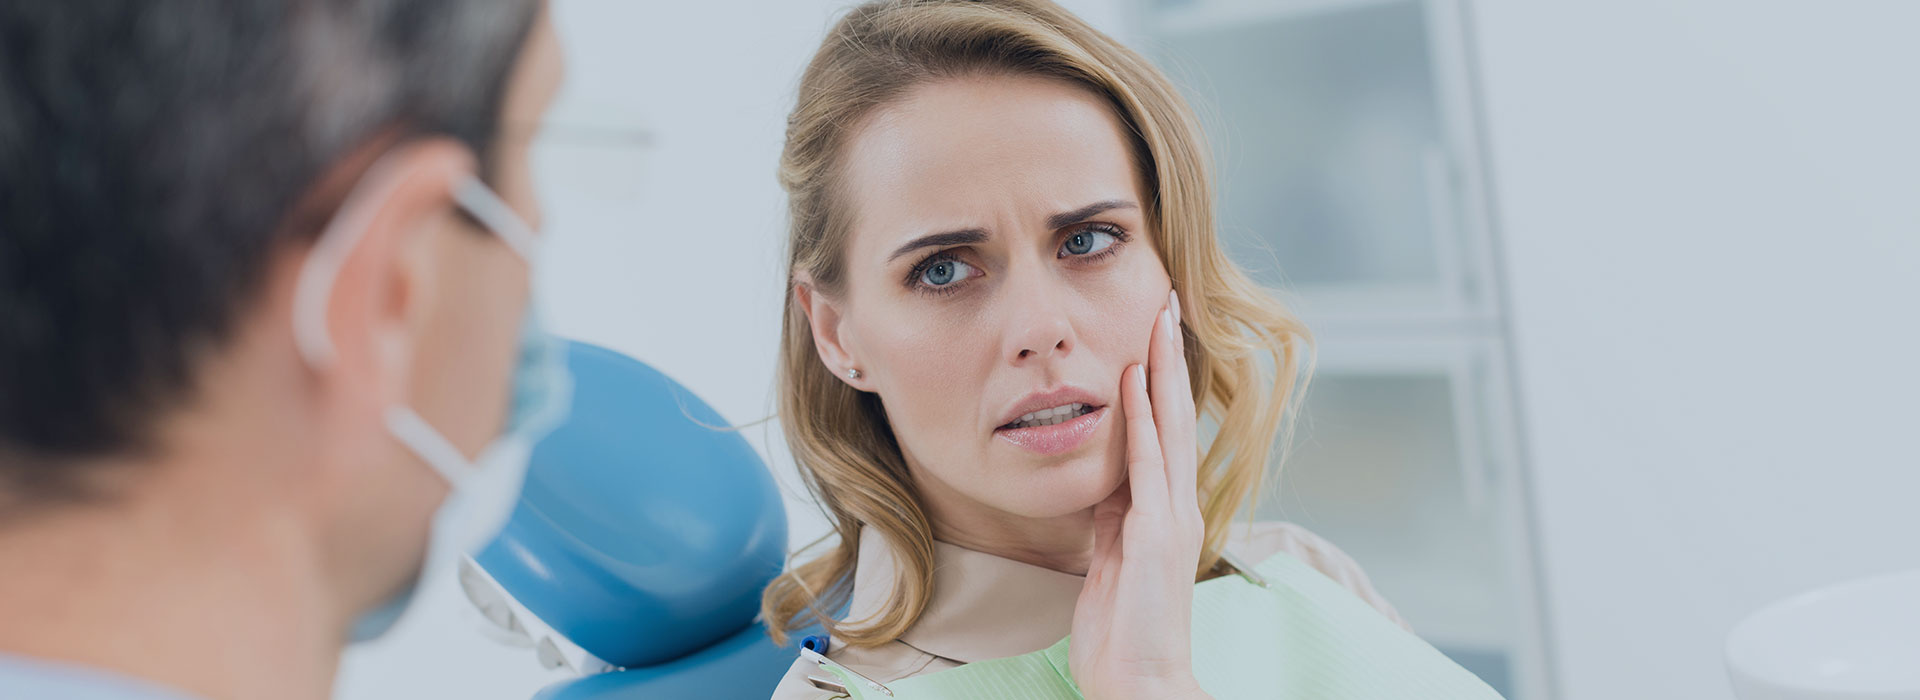 A woman is having a toothache